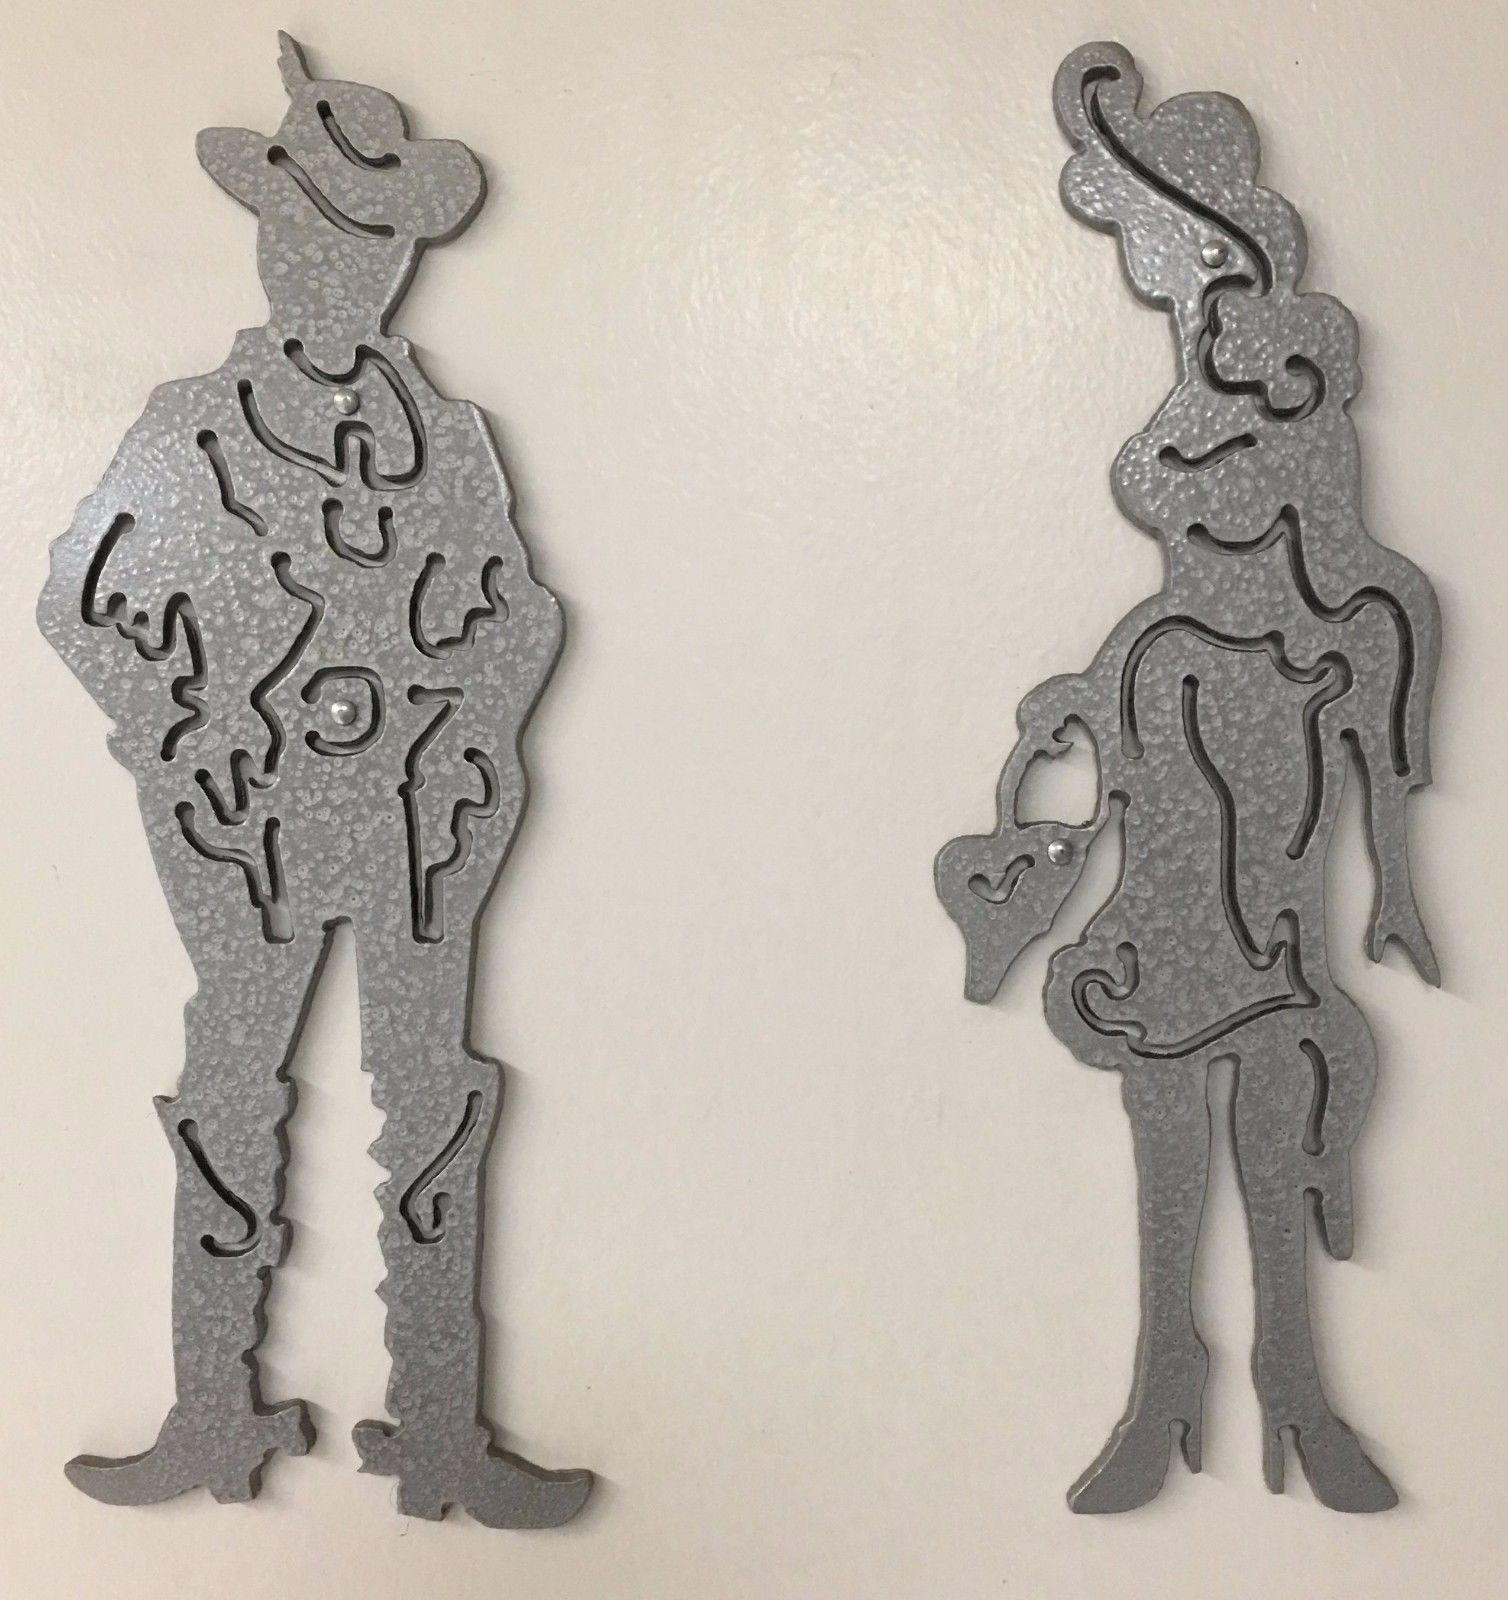 Spray Painted Steel Toilet Restroom Bathroom Signs Figures Male Female Large